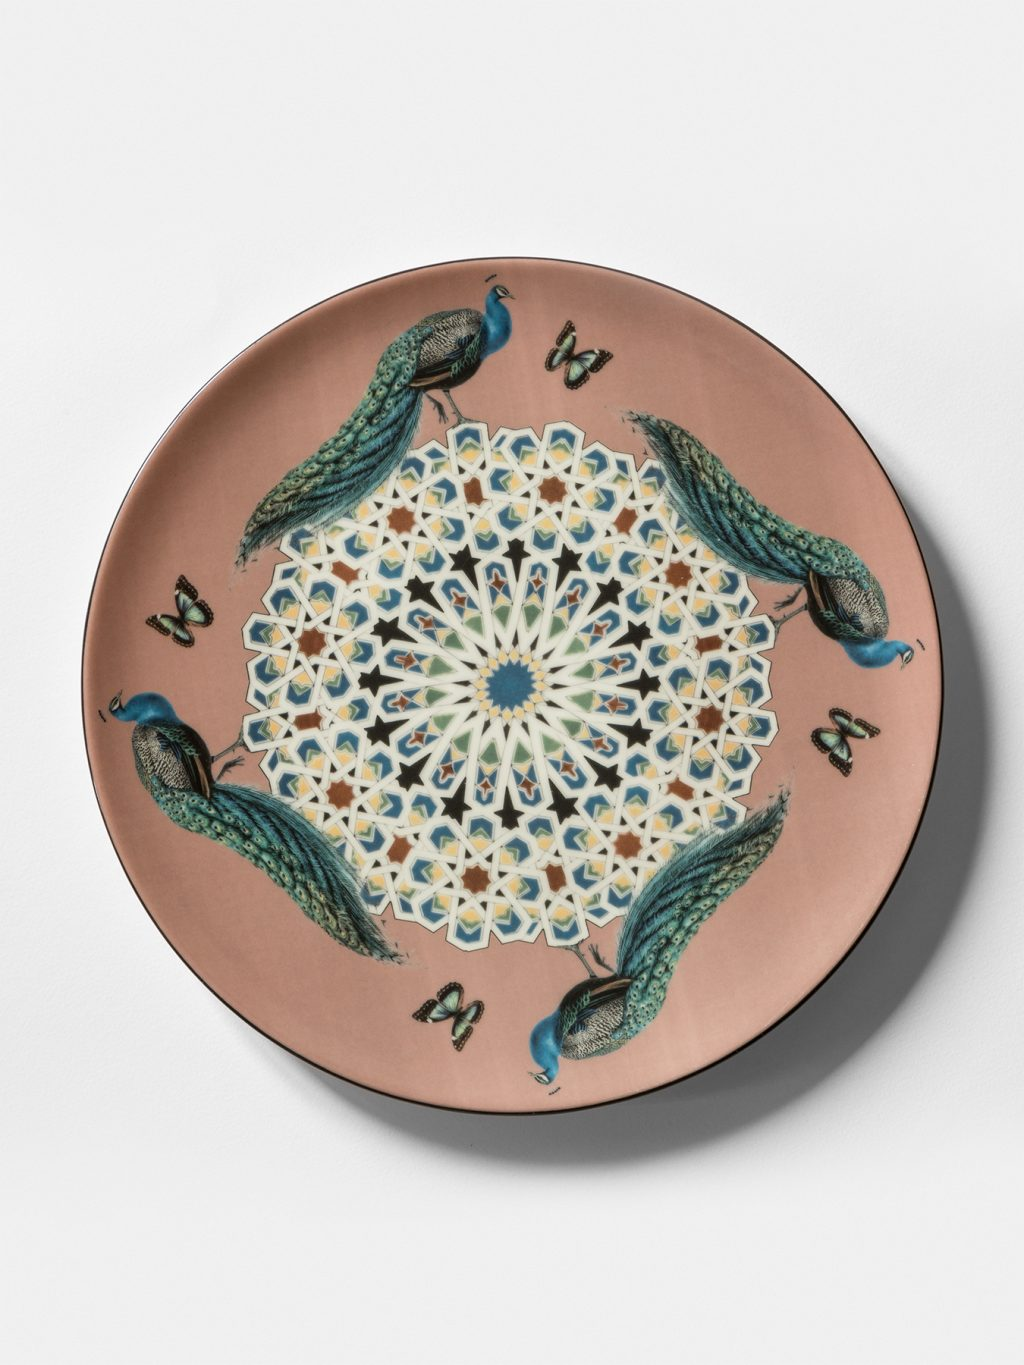 Constantinople, collection of dishes by Vito Nesta, peacocks